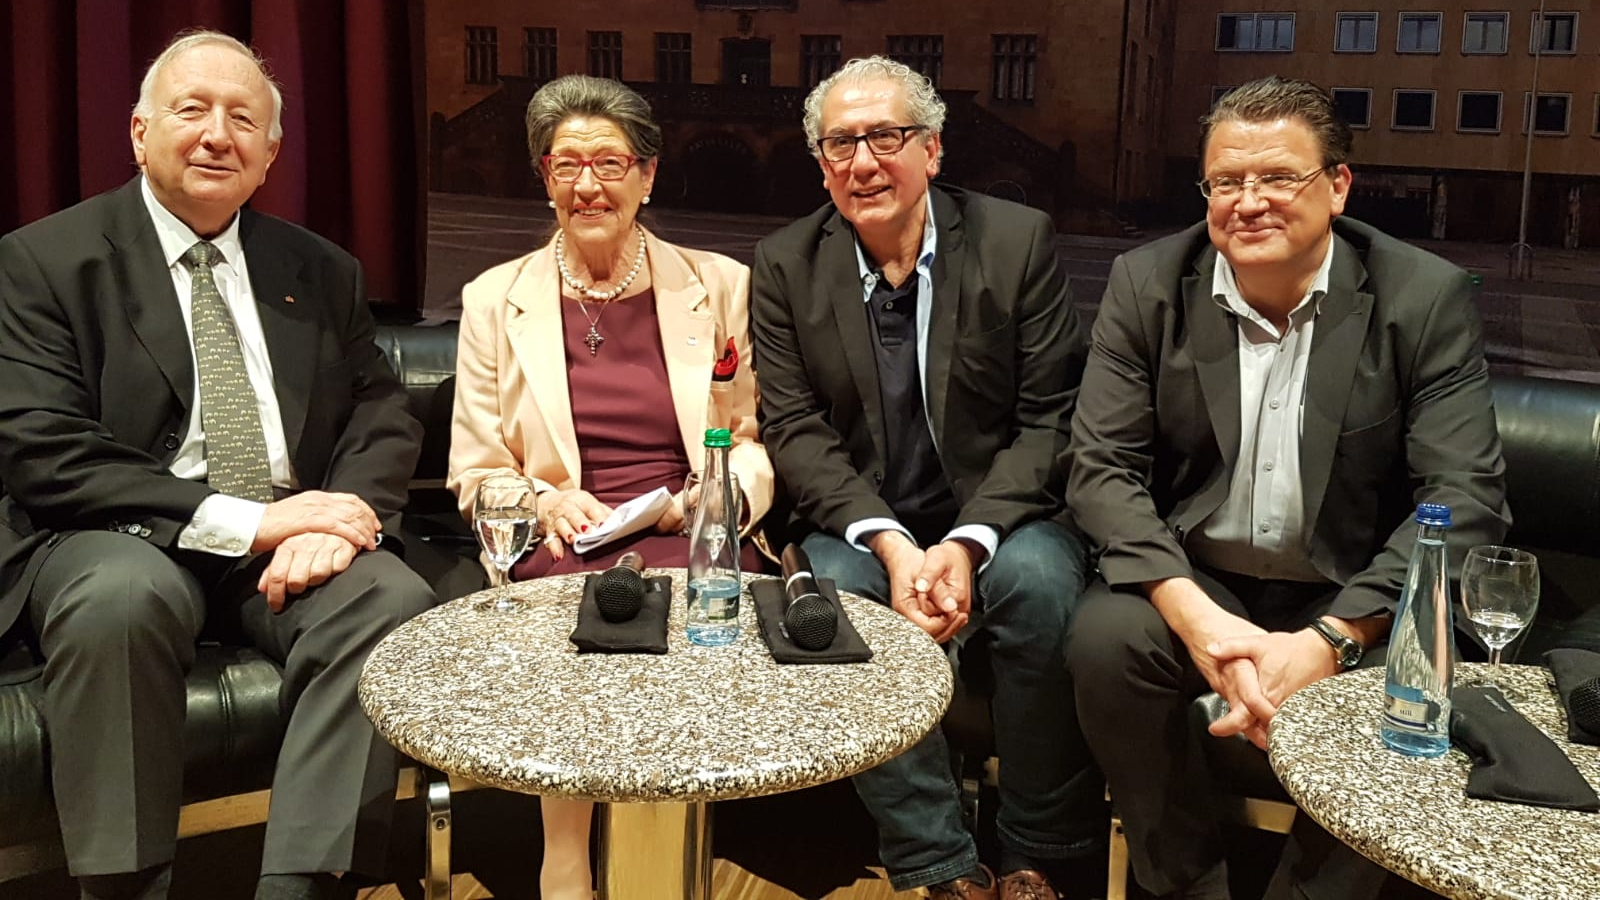 Podiumsdiskussion in Heilbronn am 13.04.2019